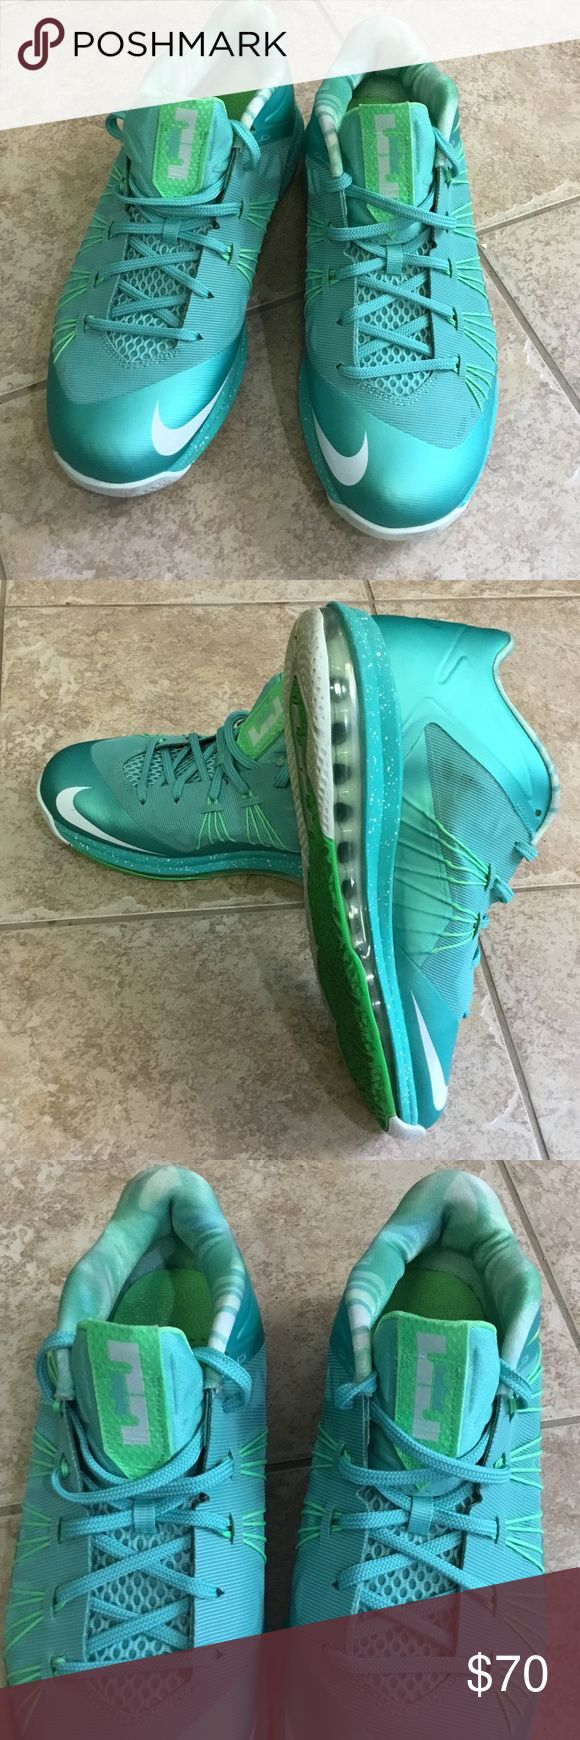 LEBRON X LOW EASTER SNEAKER Size 9 NIKE LEBRON James Men's low top sneaker Lace up closure padded tongue with LJ logo Cushioned sole....Teal Green Size 9 in Excellent Condition NIKE Lebron James Shoes Boots